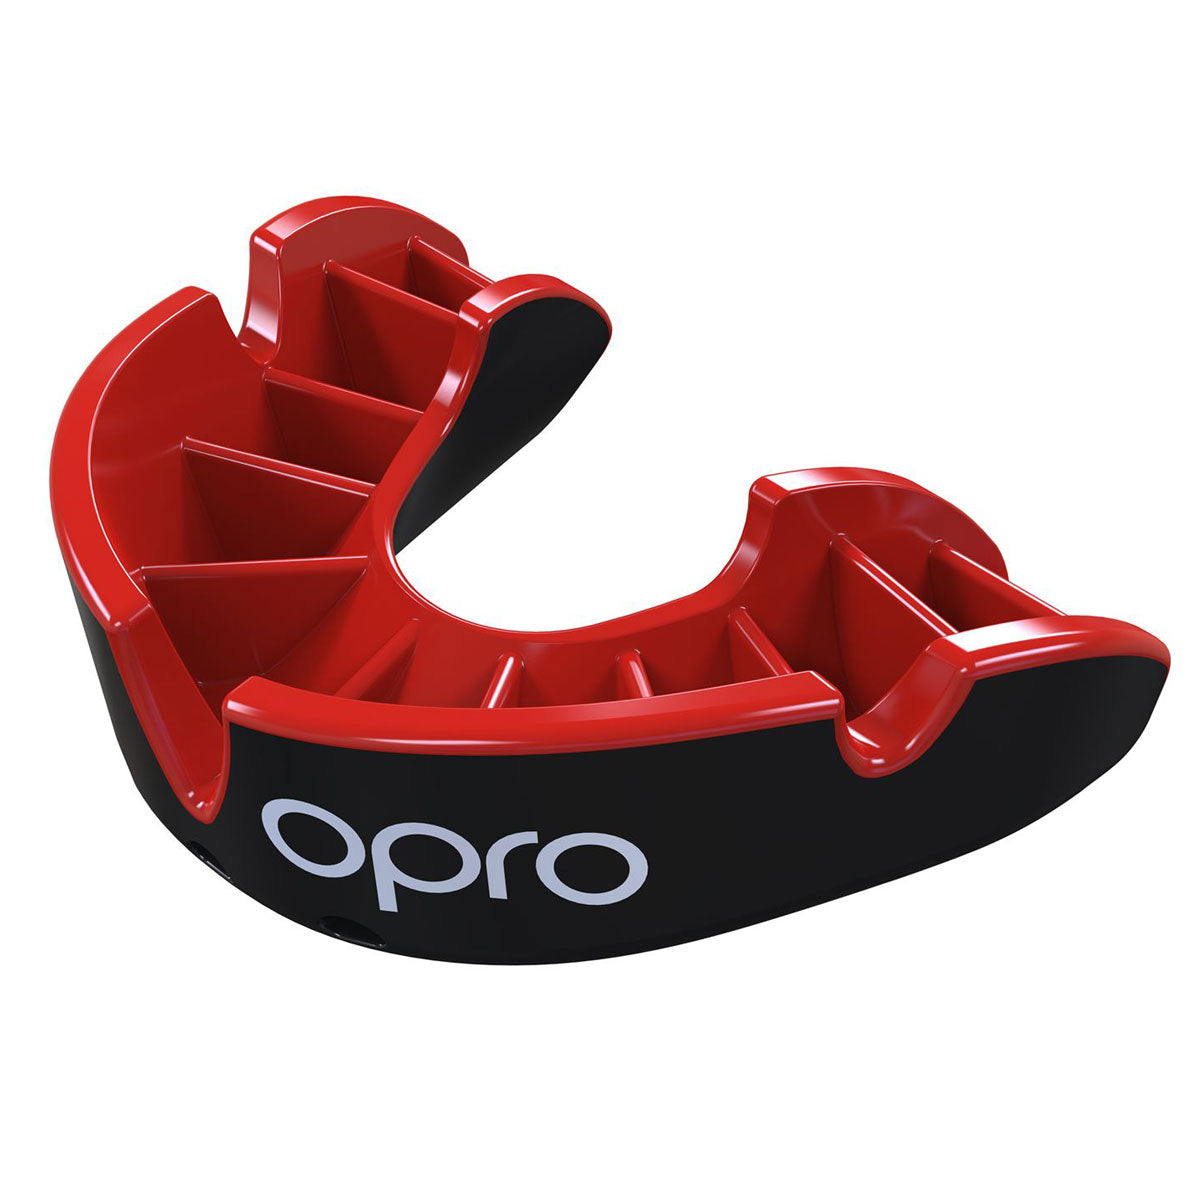 Silver Gen4 Mouthguard Black/Red - First XV rugbystuff.com